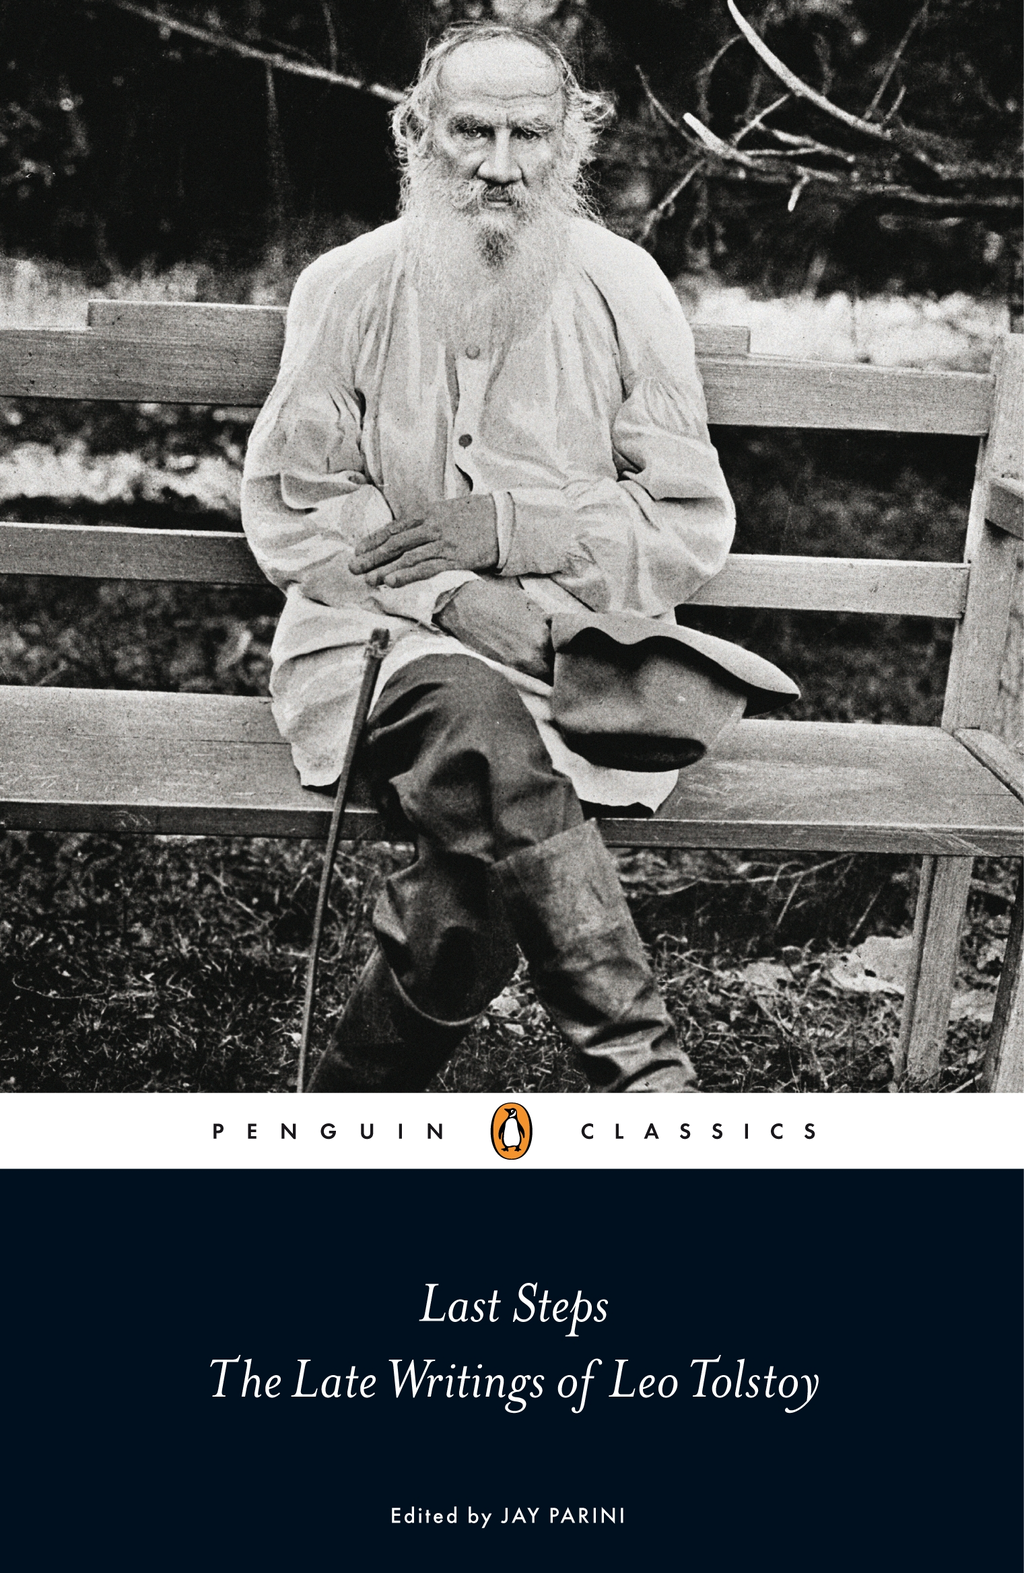 Last Steps: The Late Writings of Leo Tolstoy By: Leo Tolstoy